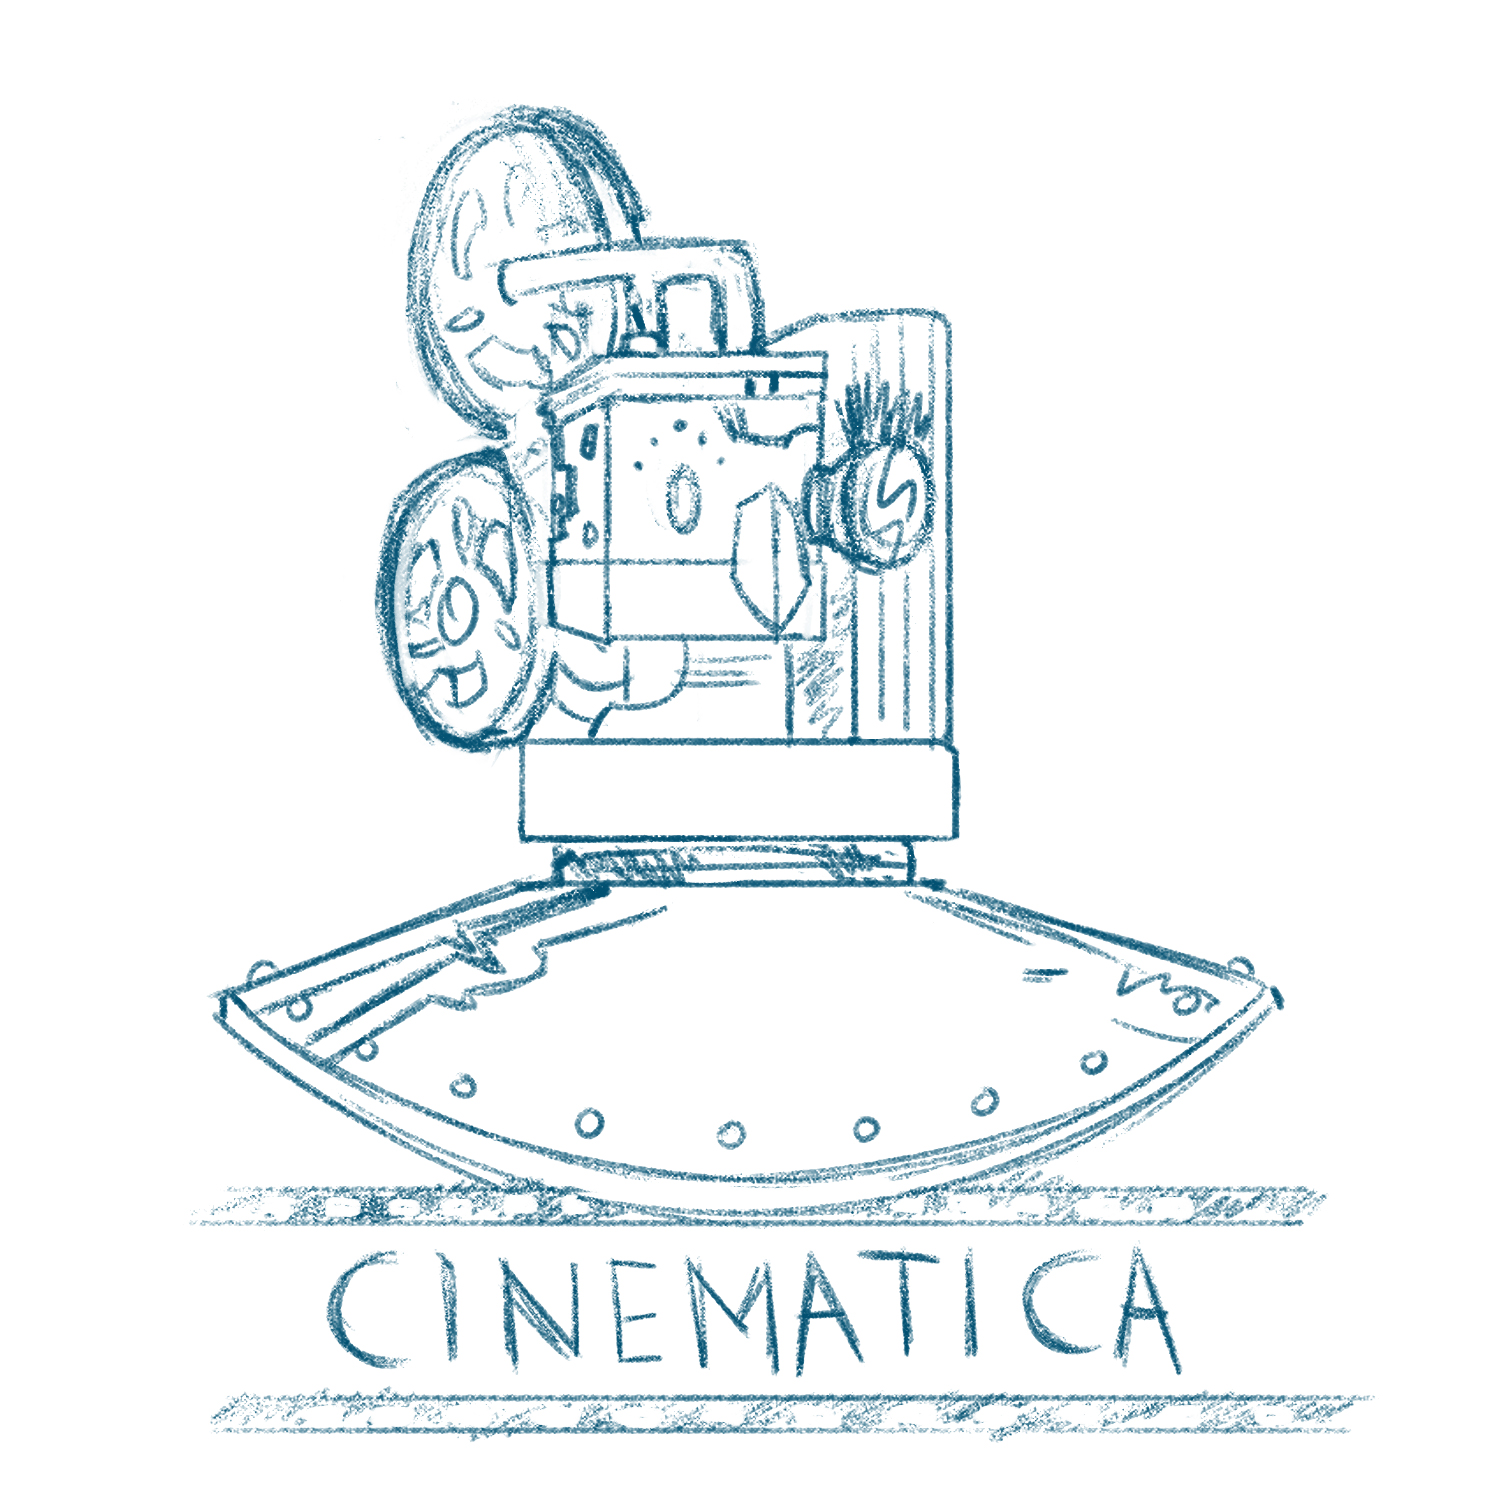 CinematicaSketch3-4RIght.jpg